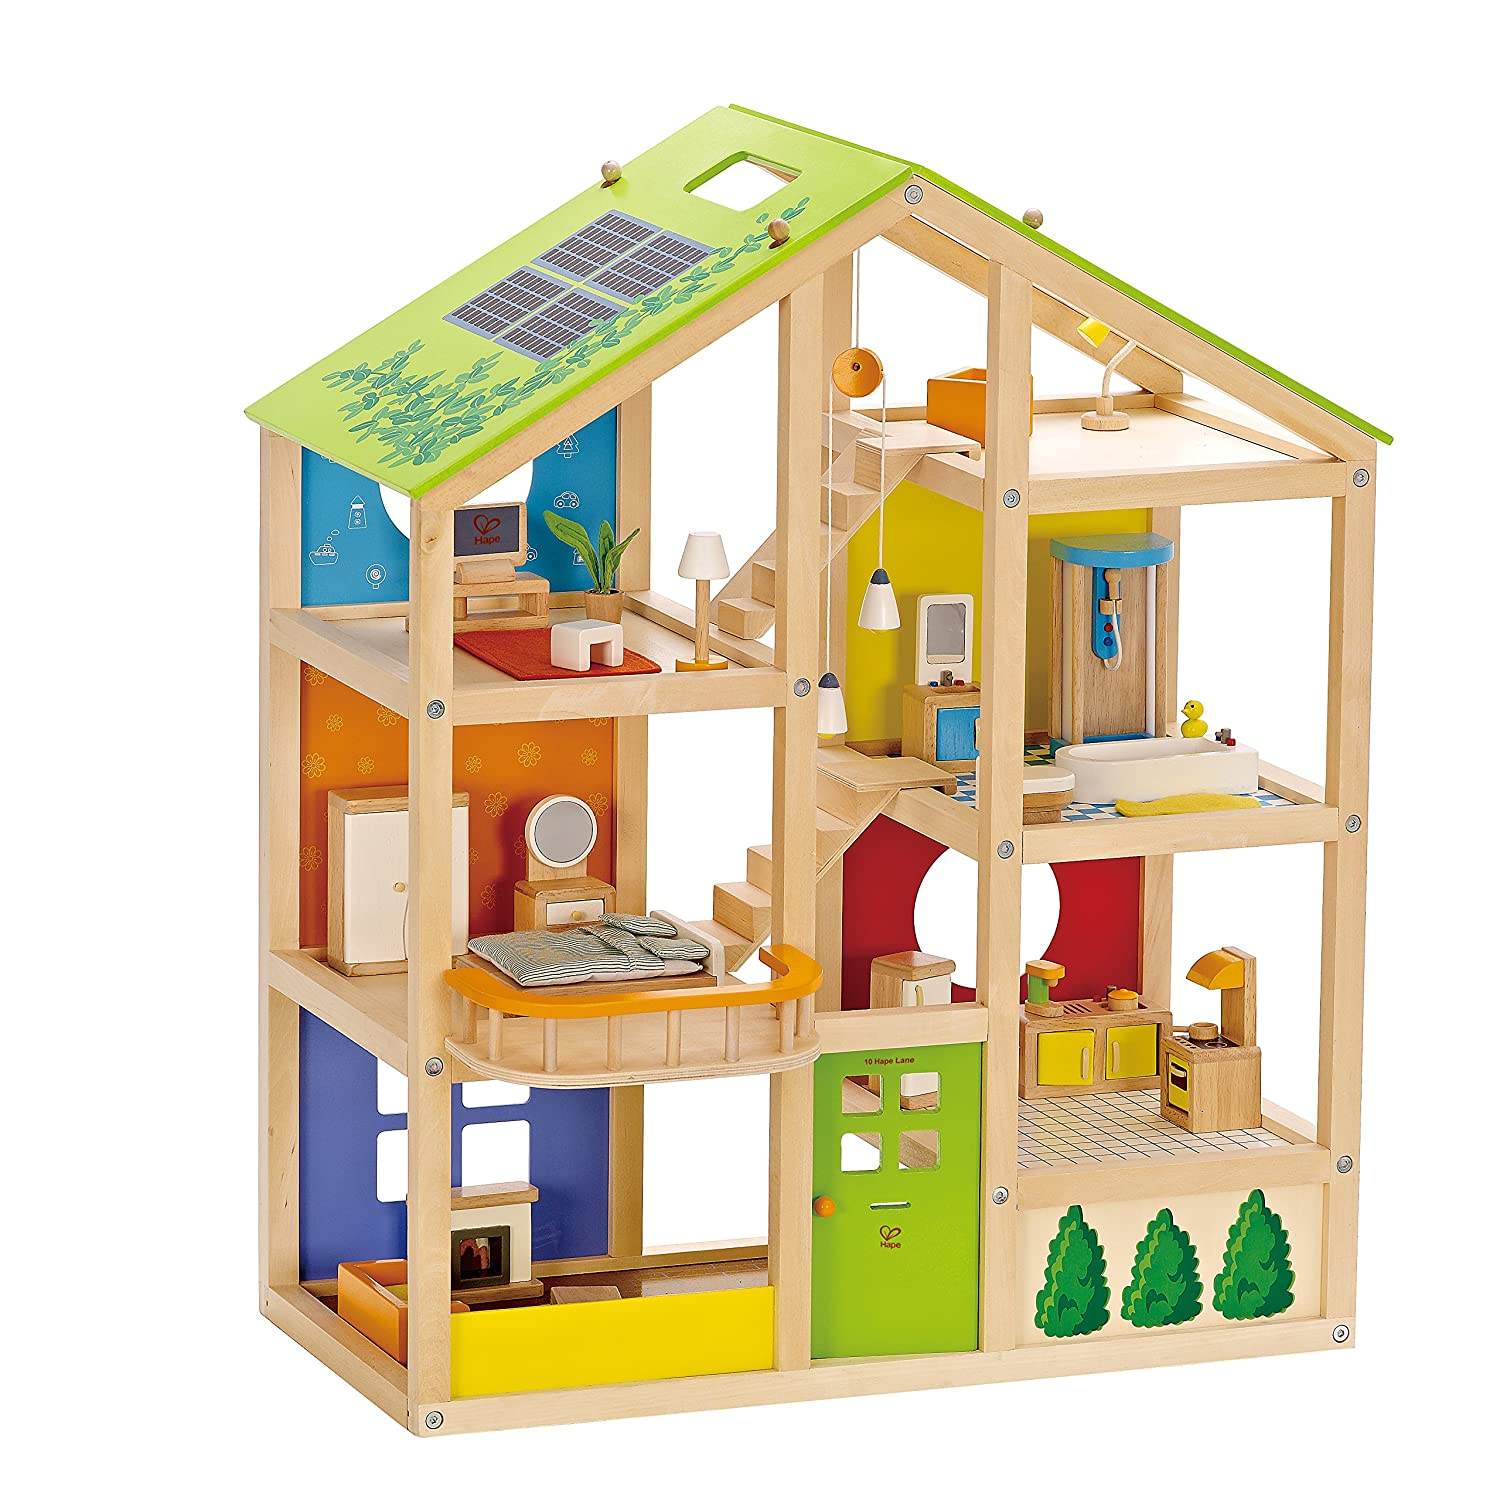 Furnished All Season Wood Doll House